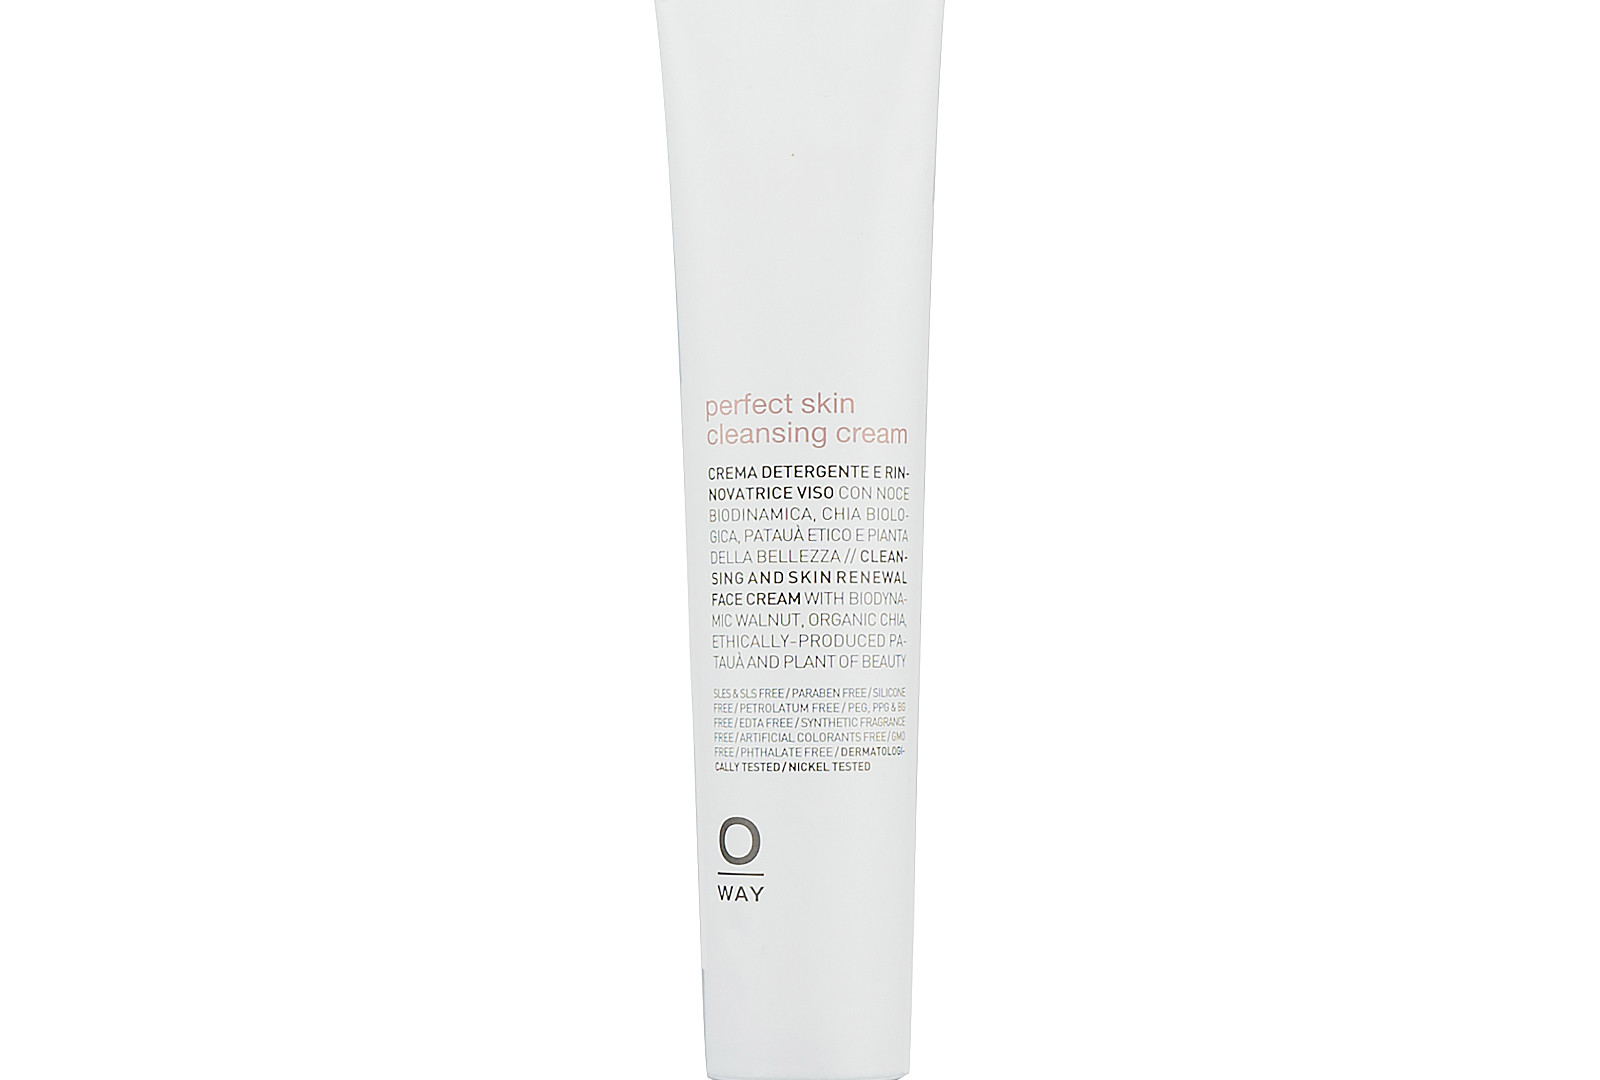 1-perfect skin cleansing cream_fronte_si